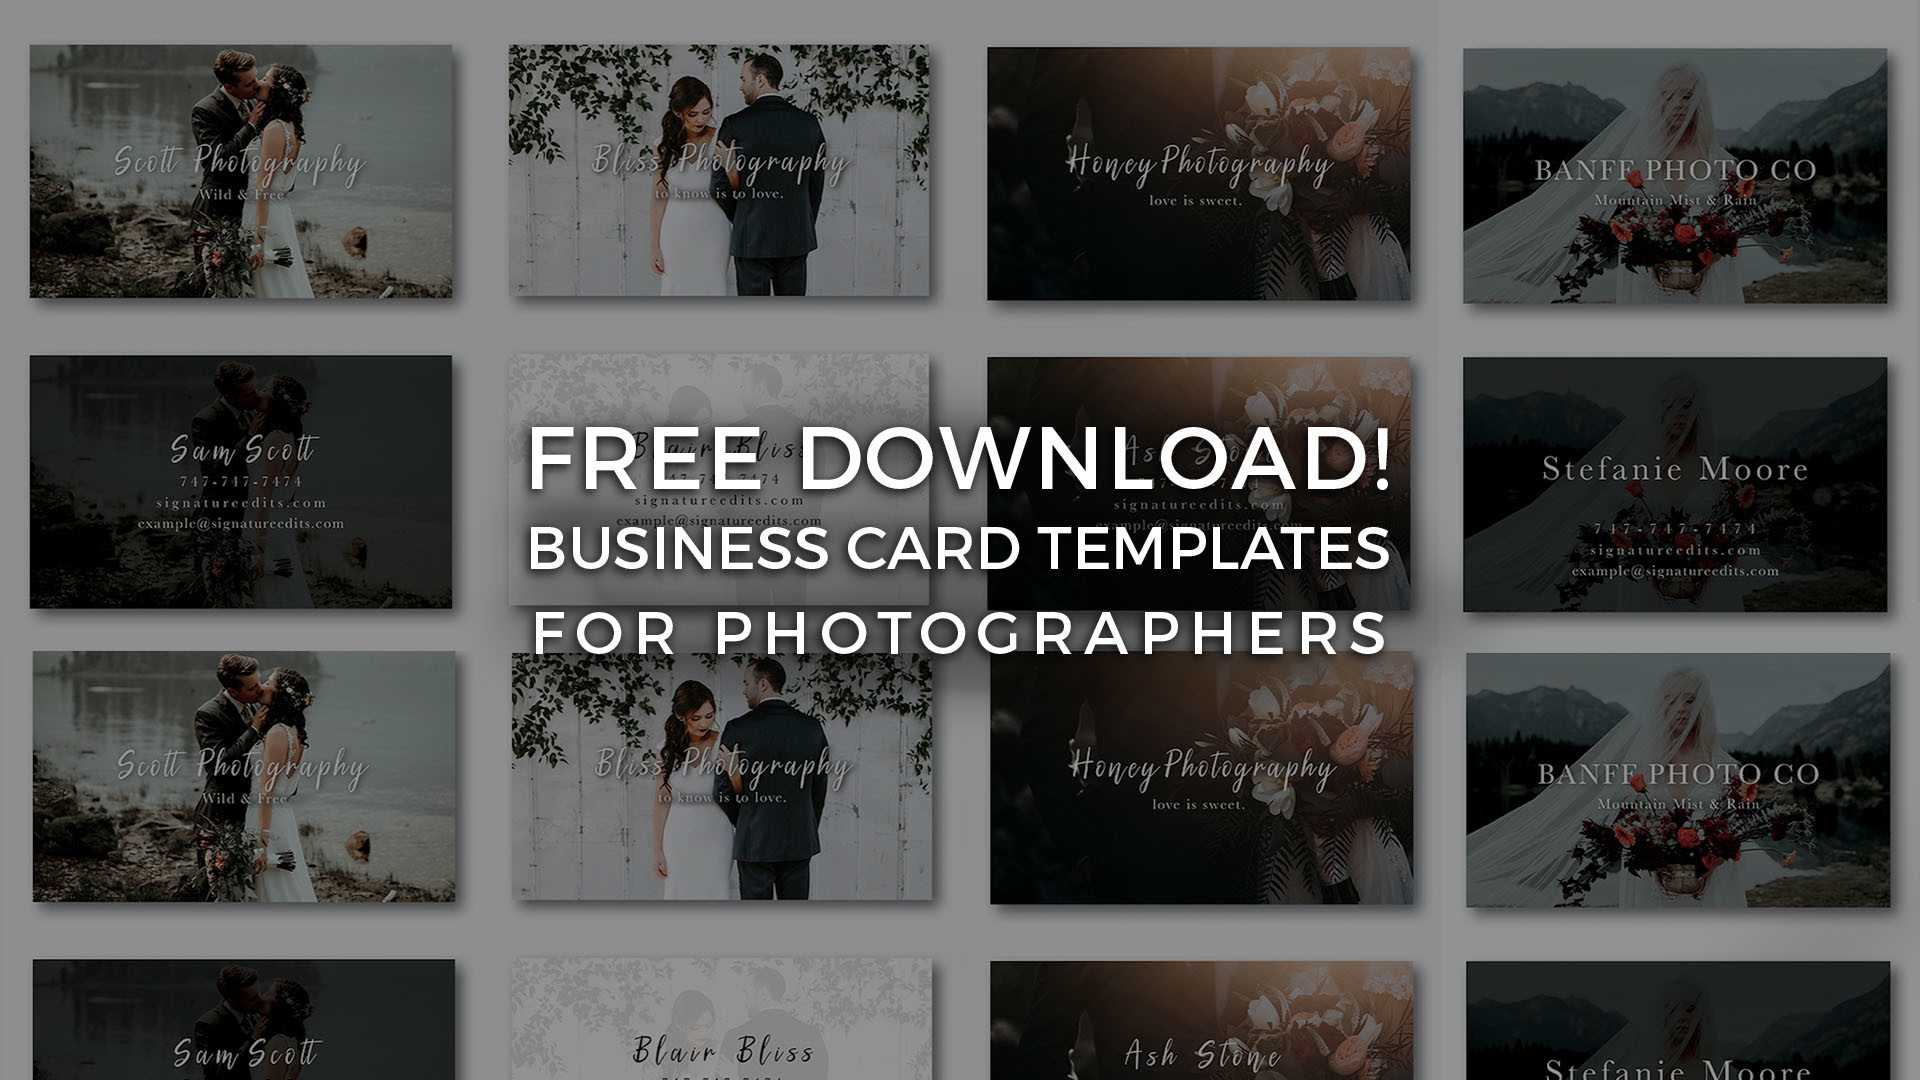 Free Photographer Business Card Templates! - Signature Edits In Free Business Card Templates For Photographers